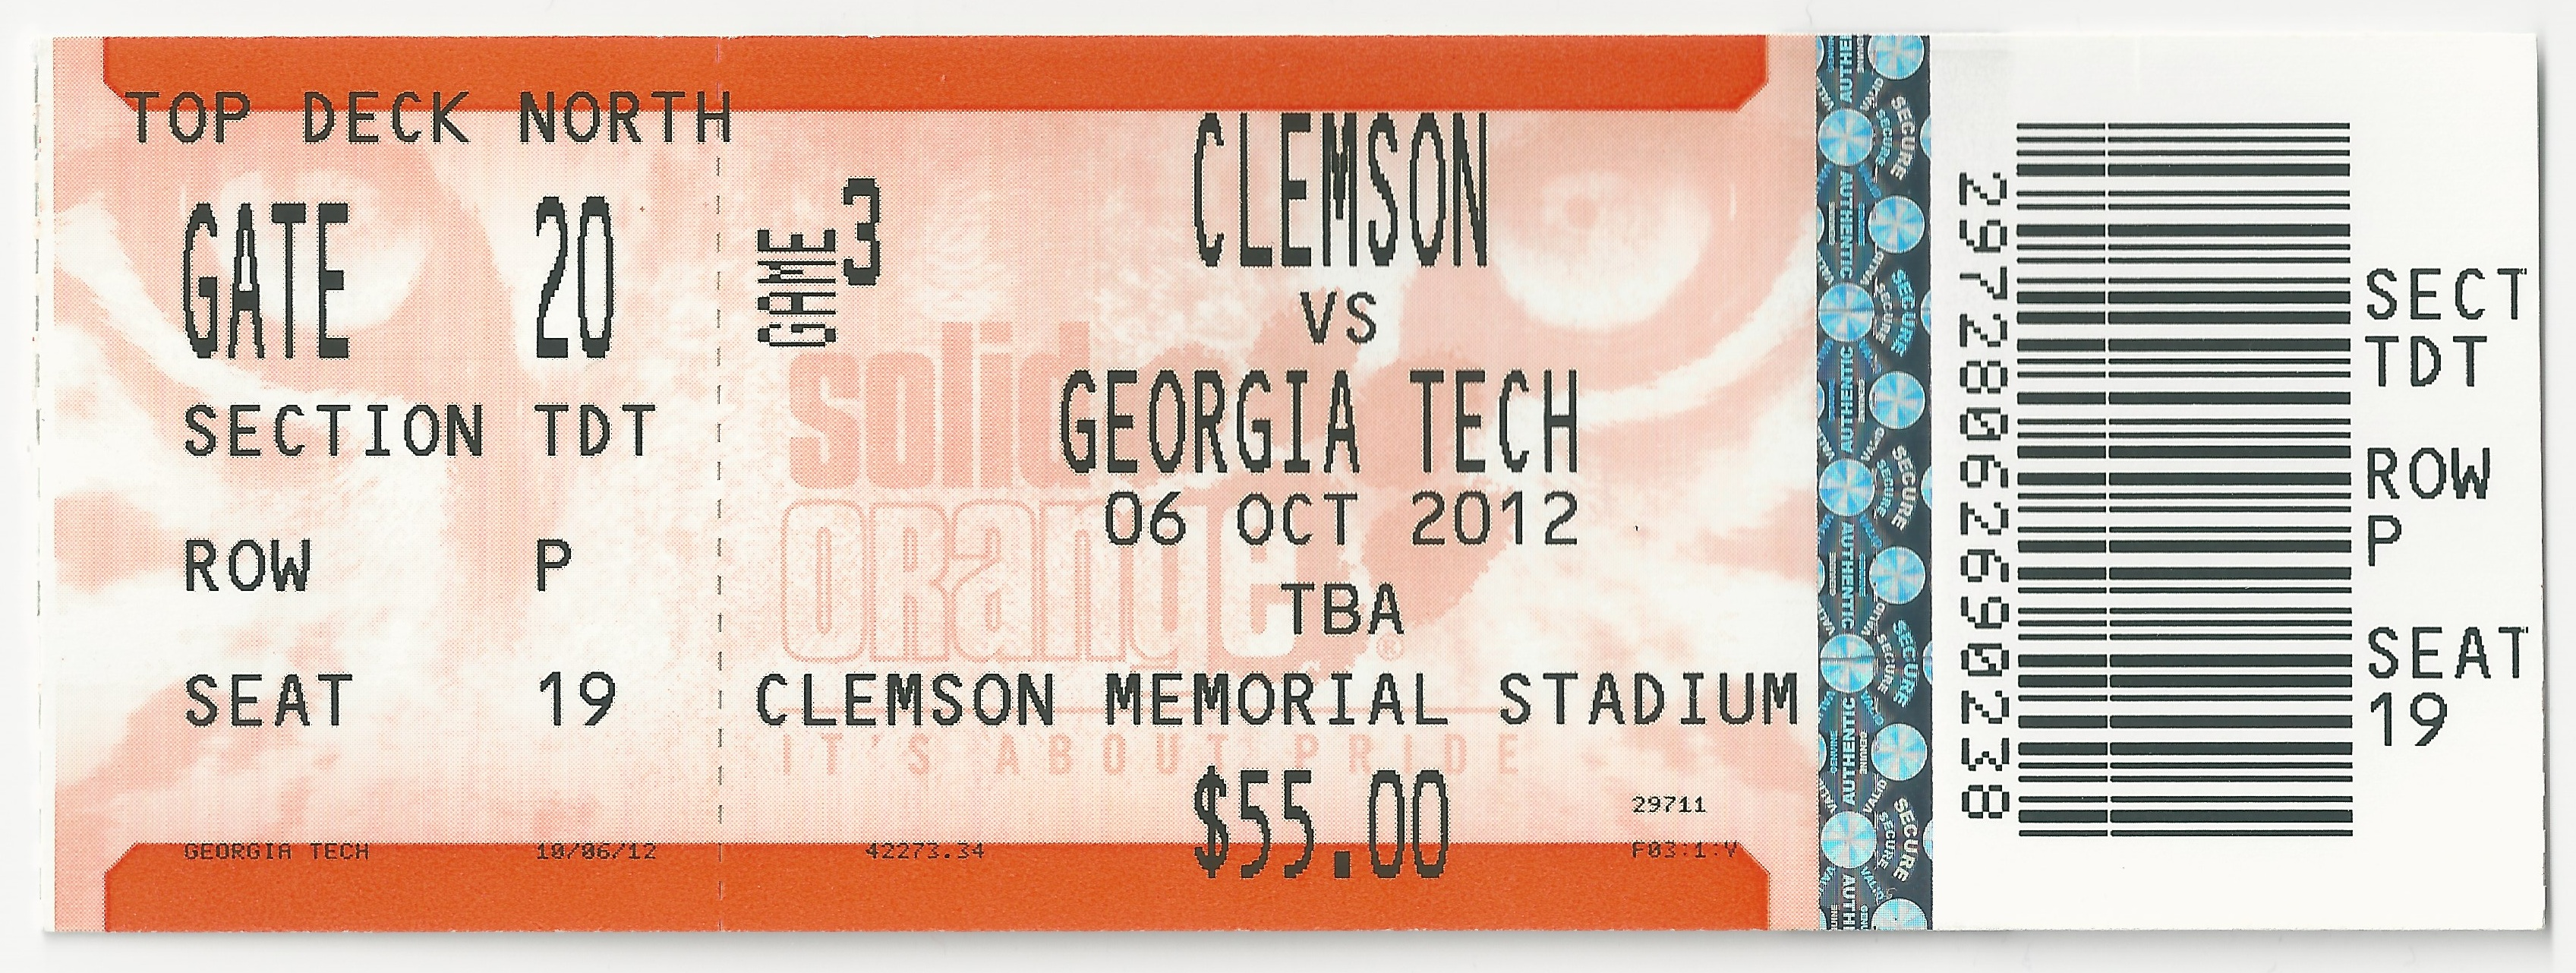 georgia tech application essay 2012 It's official: the 2012/2013 college application season has begun georgia tech has posted a preview of its essay prompts for the new application season, and after confirming with the.